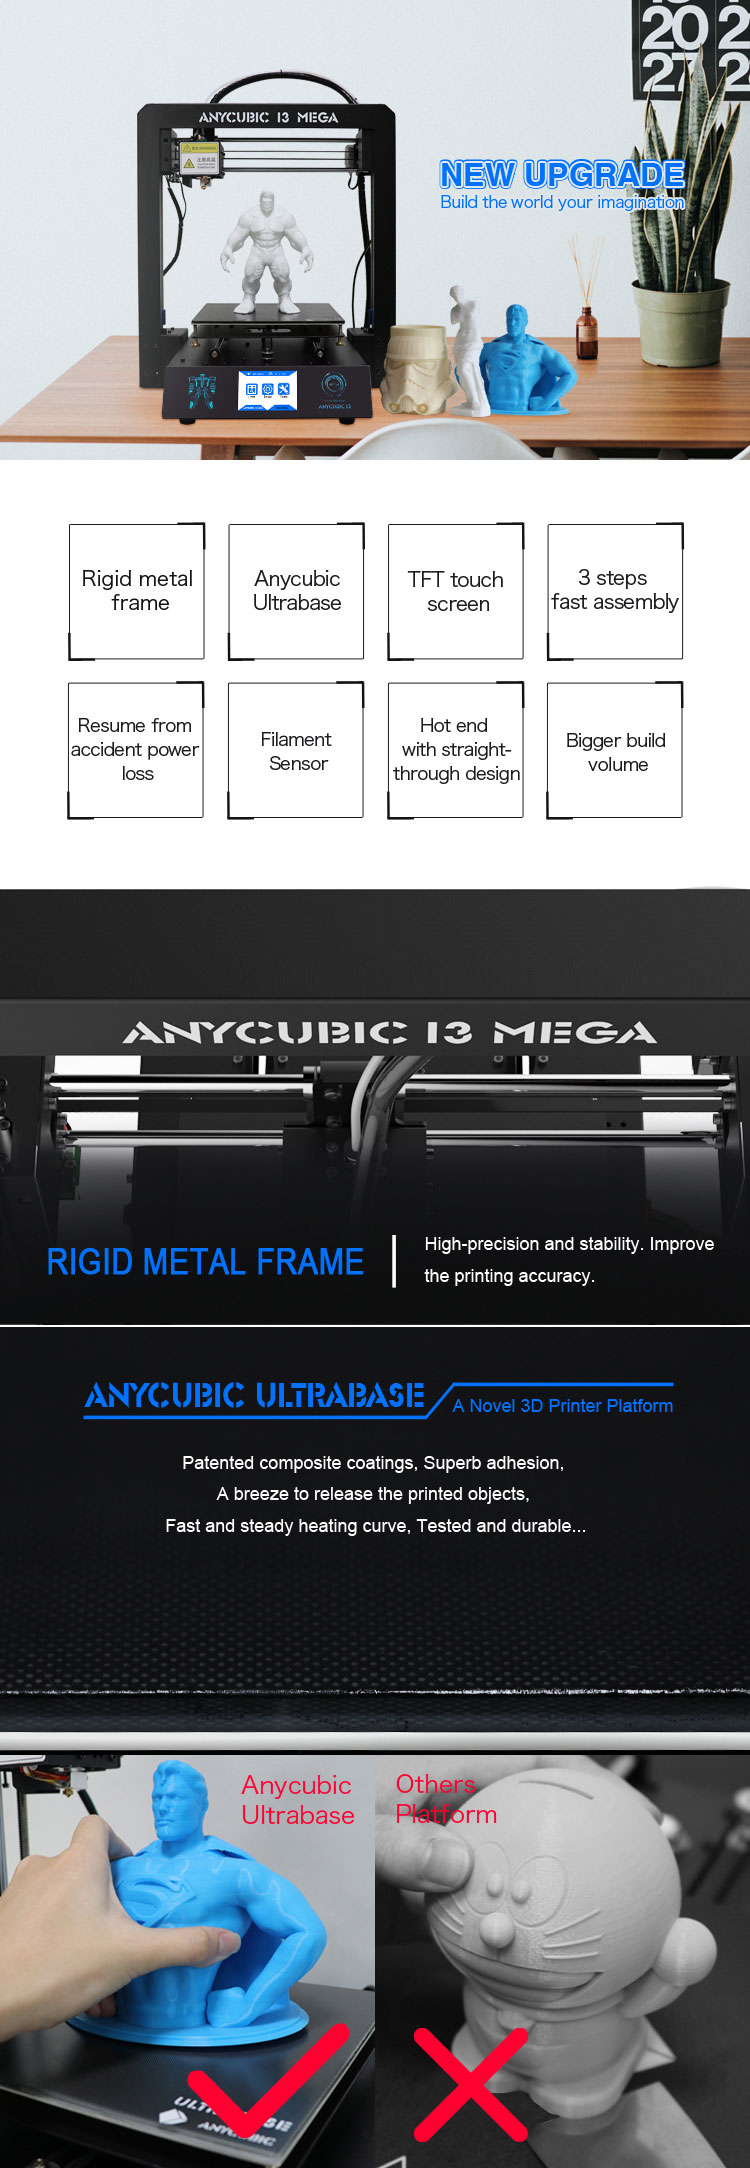 Anycubic i3 MEGA 3D Printer with Ultrabase